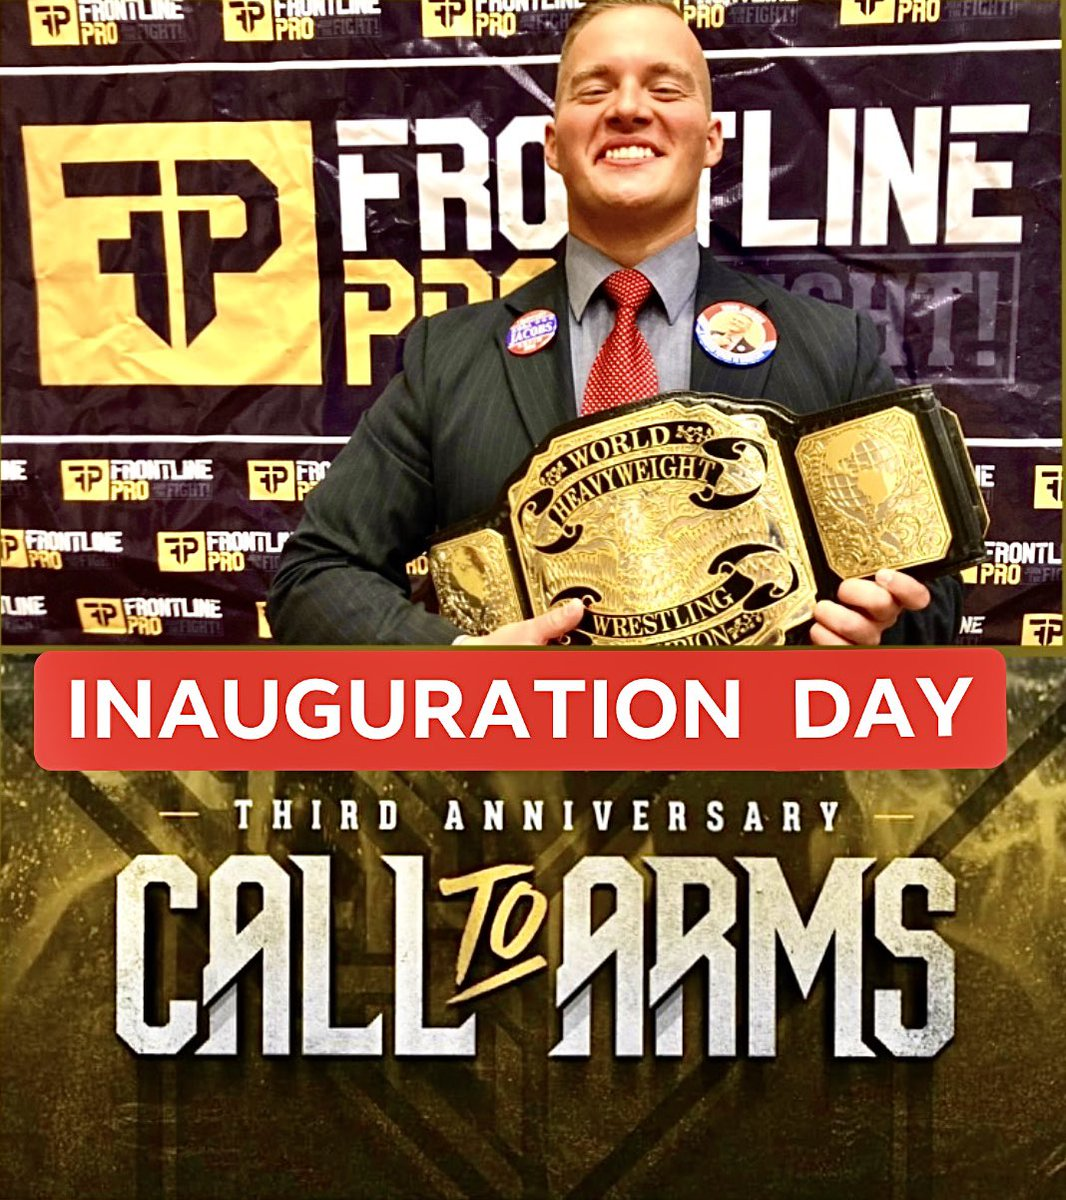 In two weeks,  Join us for the most important night in this company's history. The night we coronate a new leader, and a new bright chapter in @FrontlinePro1.  03.20.21 - It's INAUGURATION DAY. 🏆 🇺🇸  #ABrighterFutureInWrestling #KODA21 #FrontlinePro #CallToArms #InaugurationDay